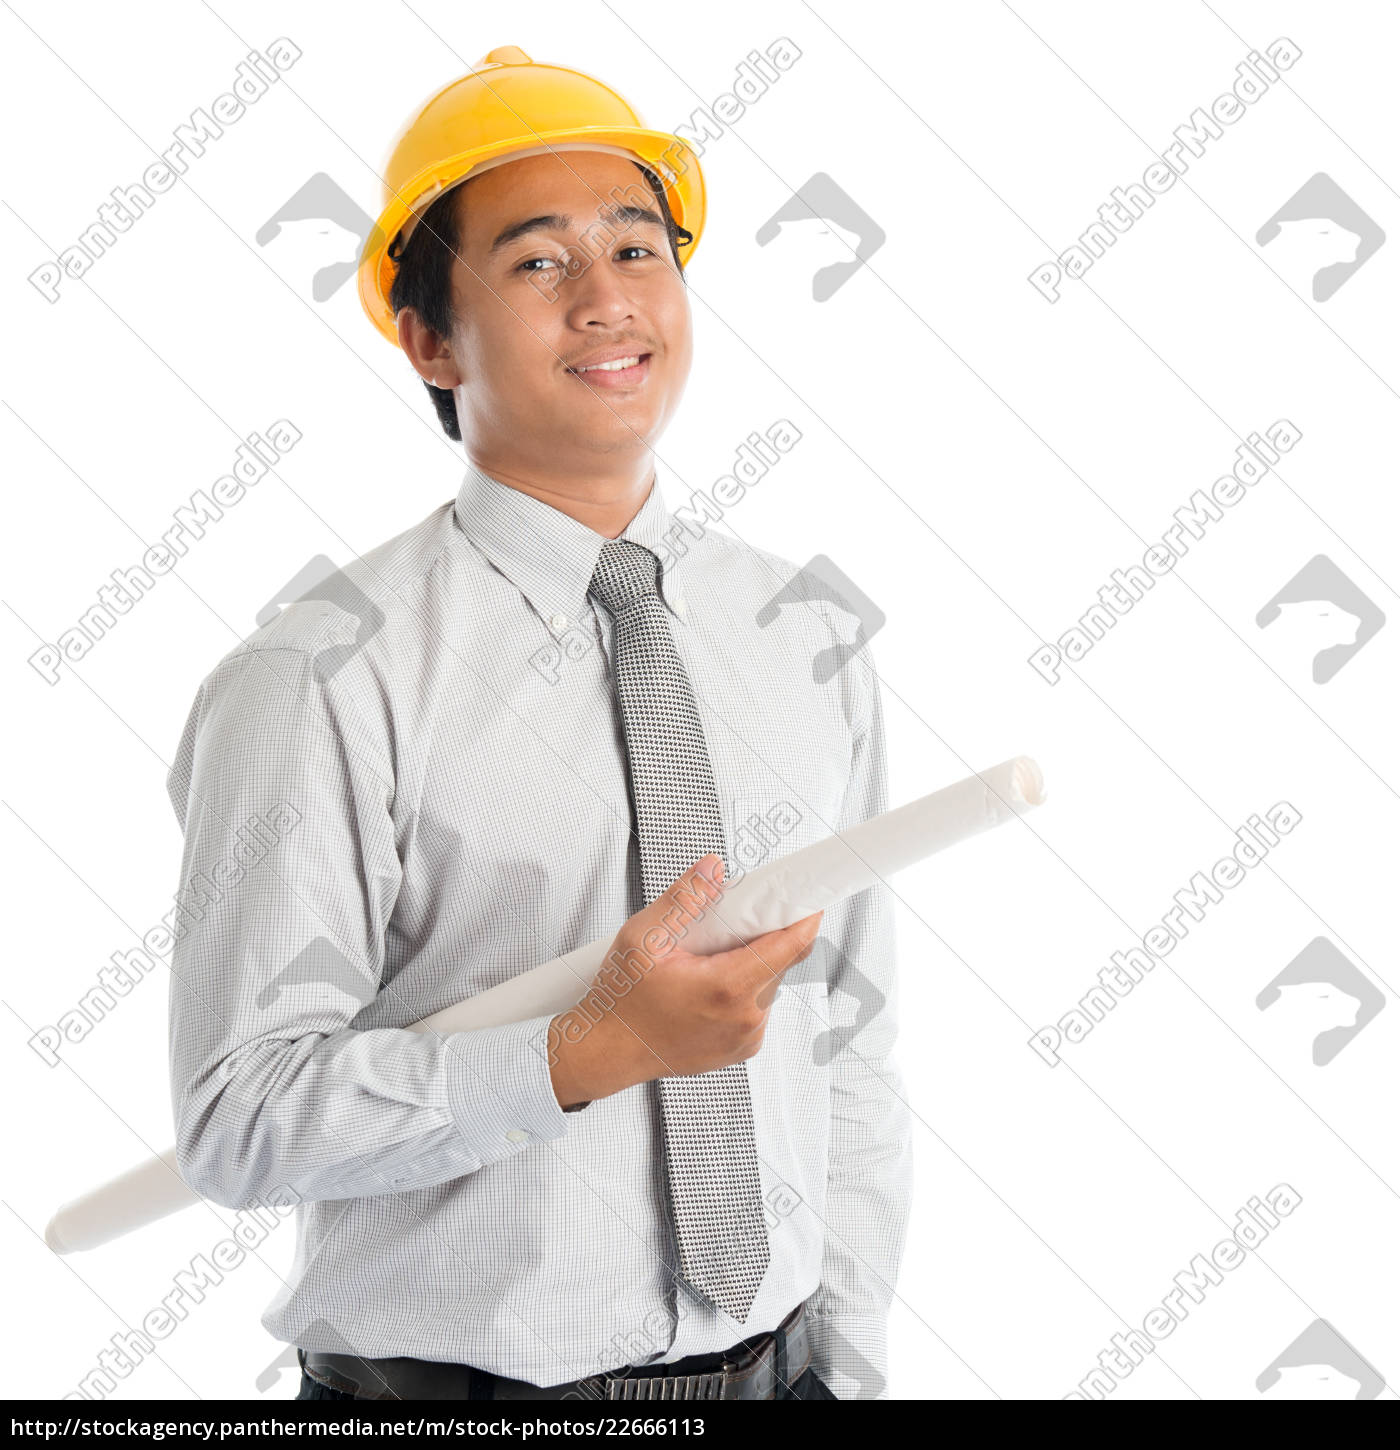 asian, man, with, safety, hardhat - 22666113